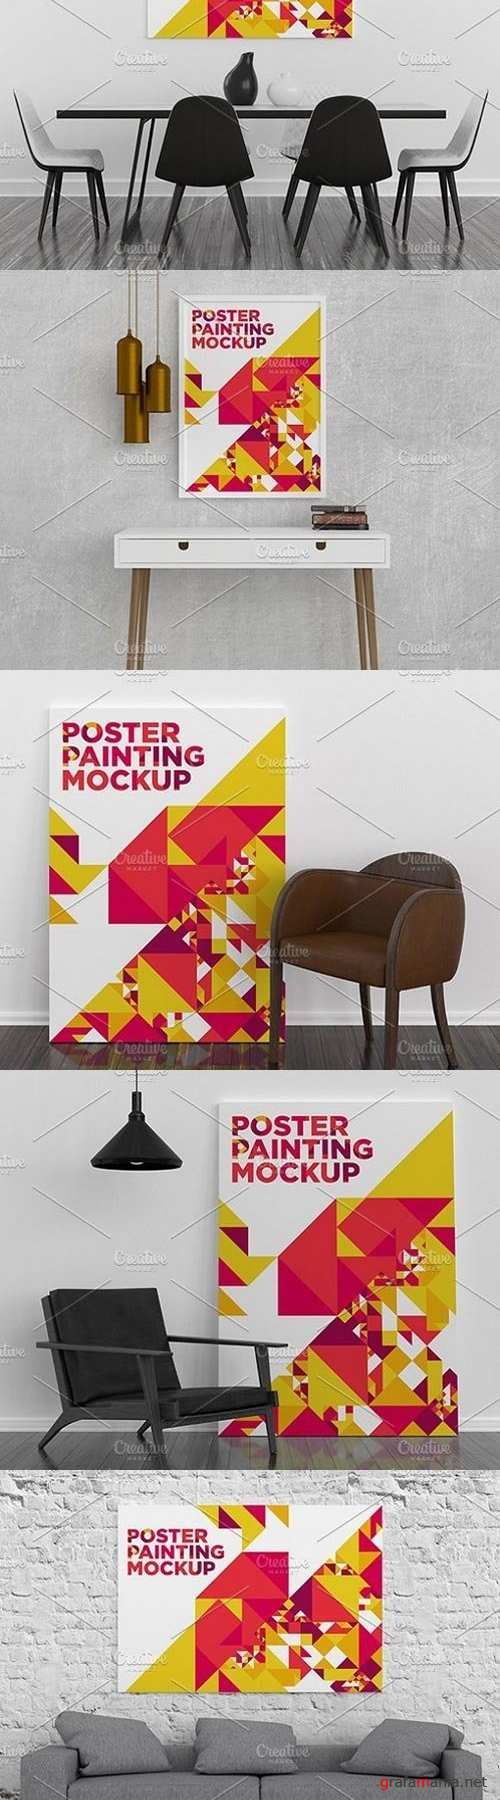 Poster Painting MockUp Pack 001 - 1710761